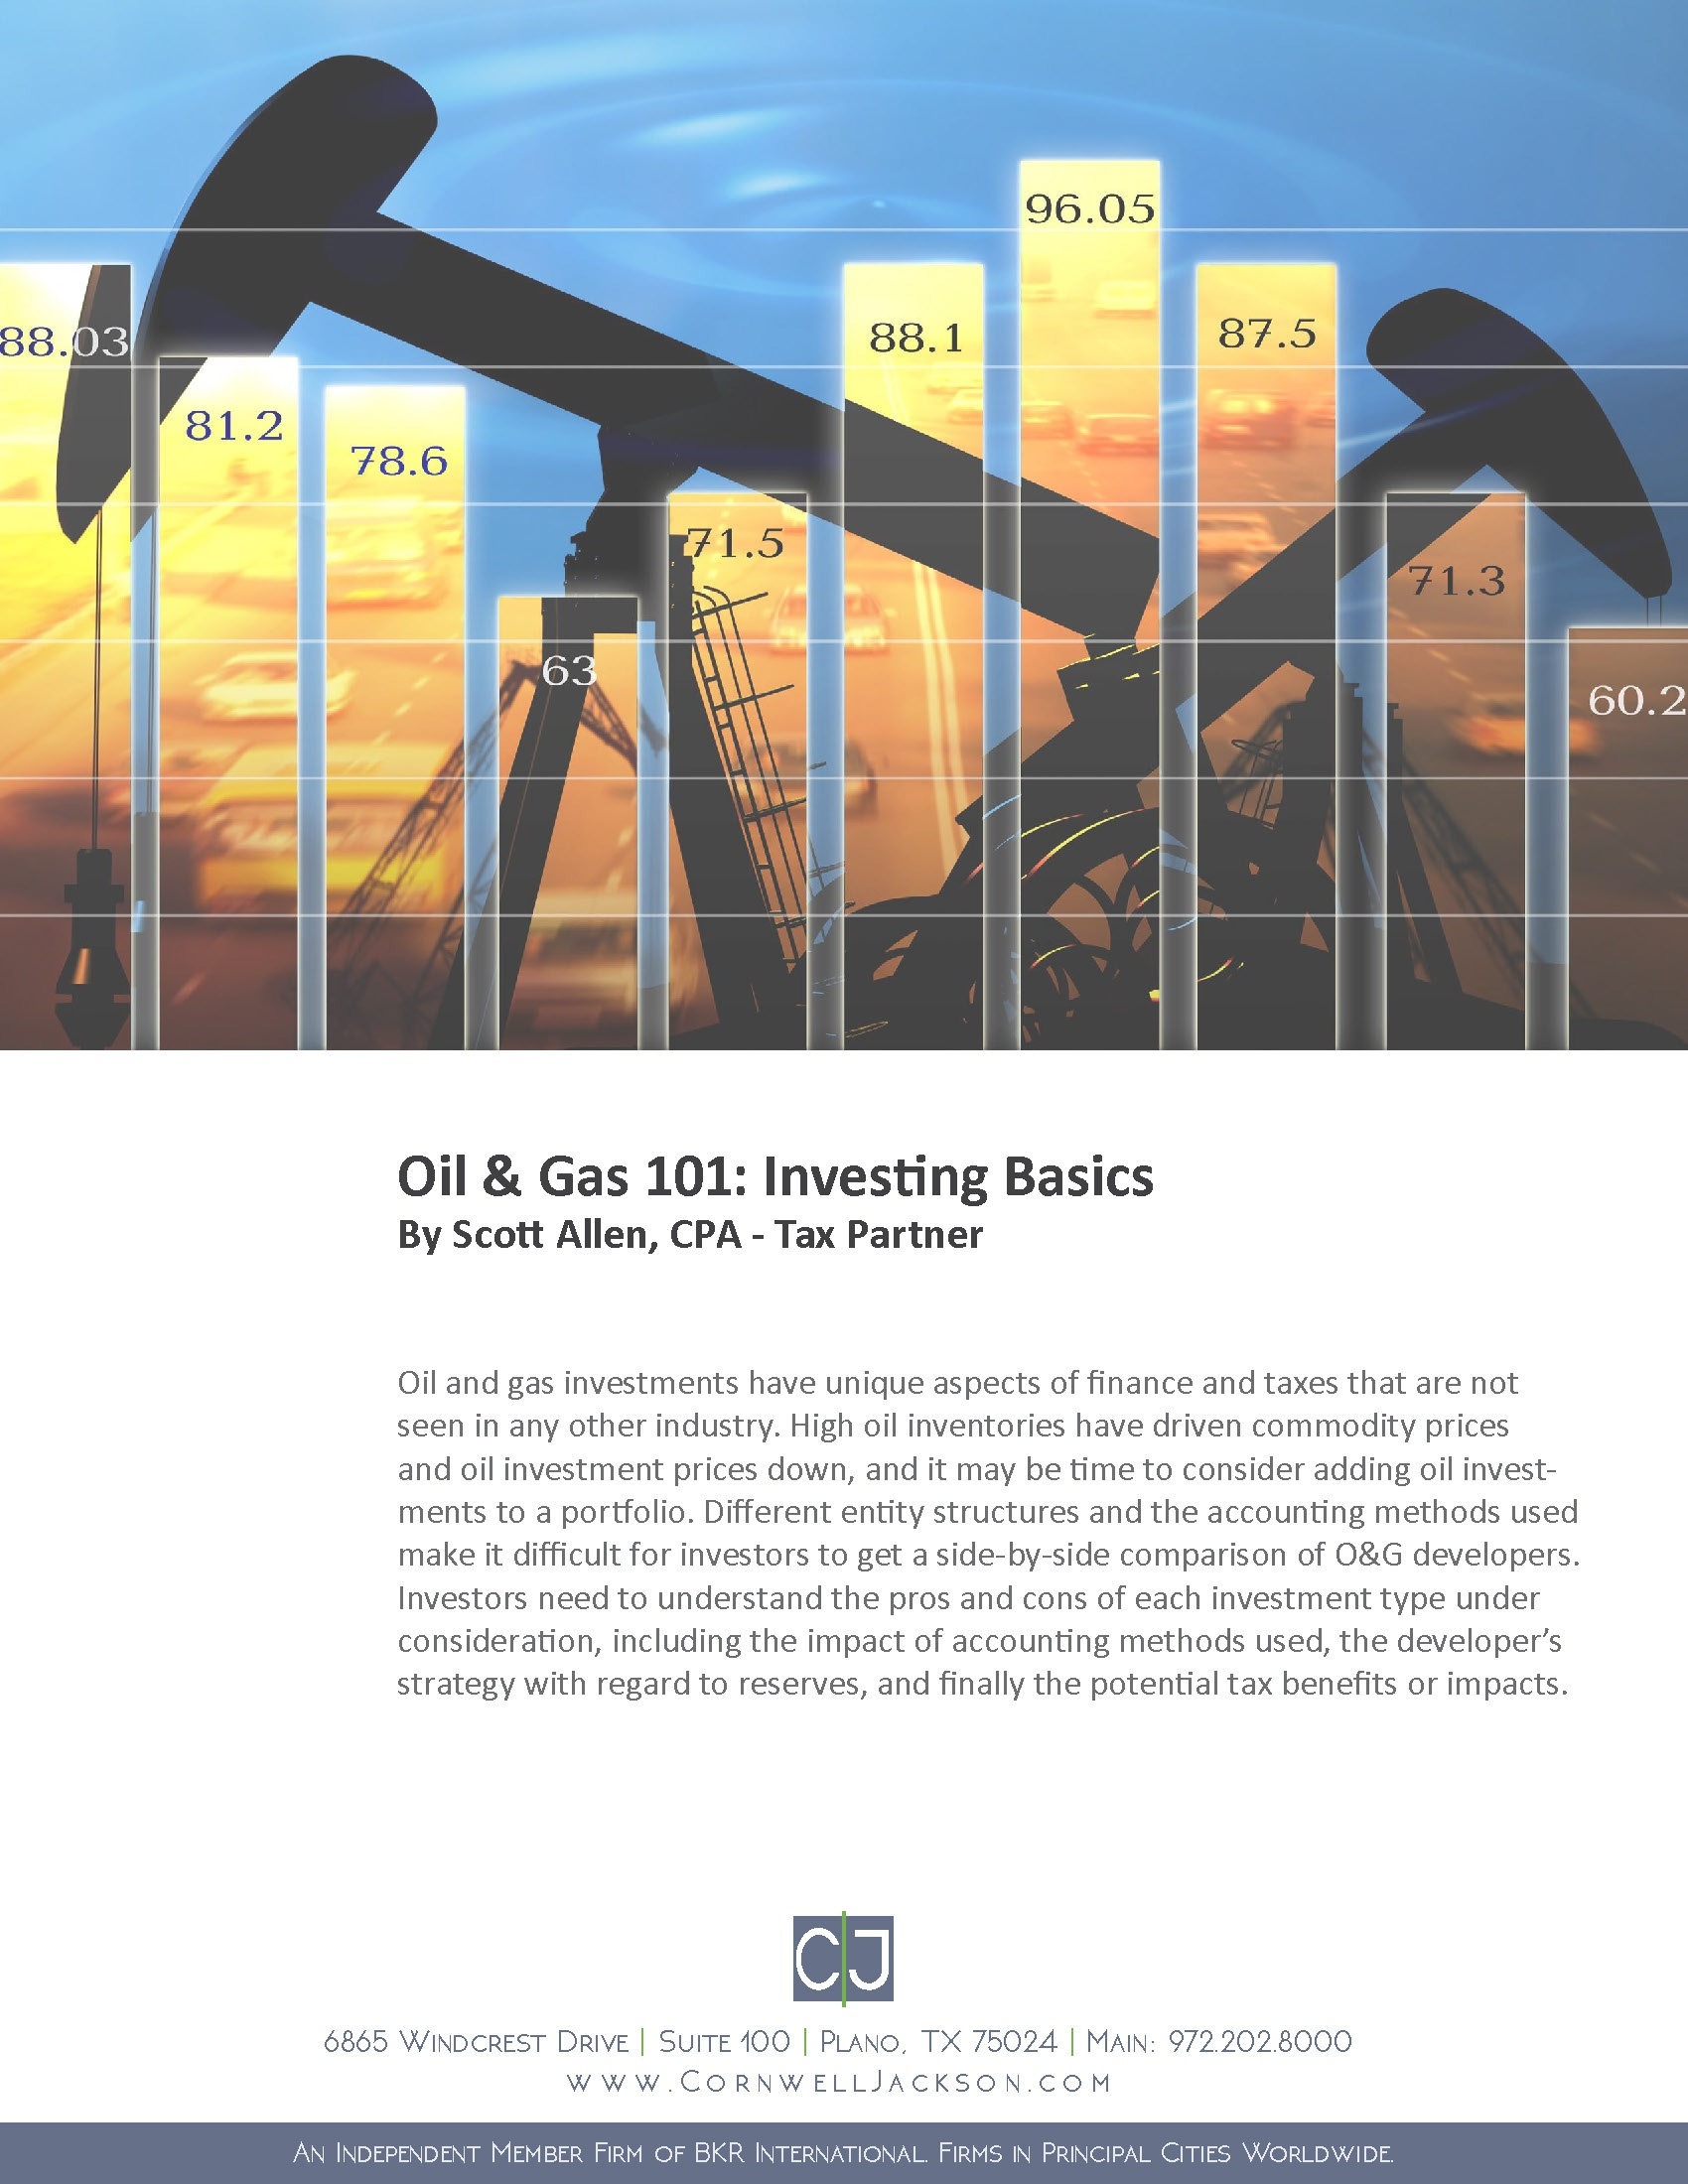 Cover - Oil and Gas 101 - Investing Basics by Scott Allen, CPA - A Whitepaper.jpg